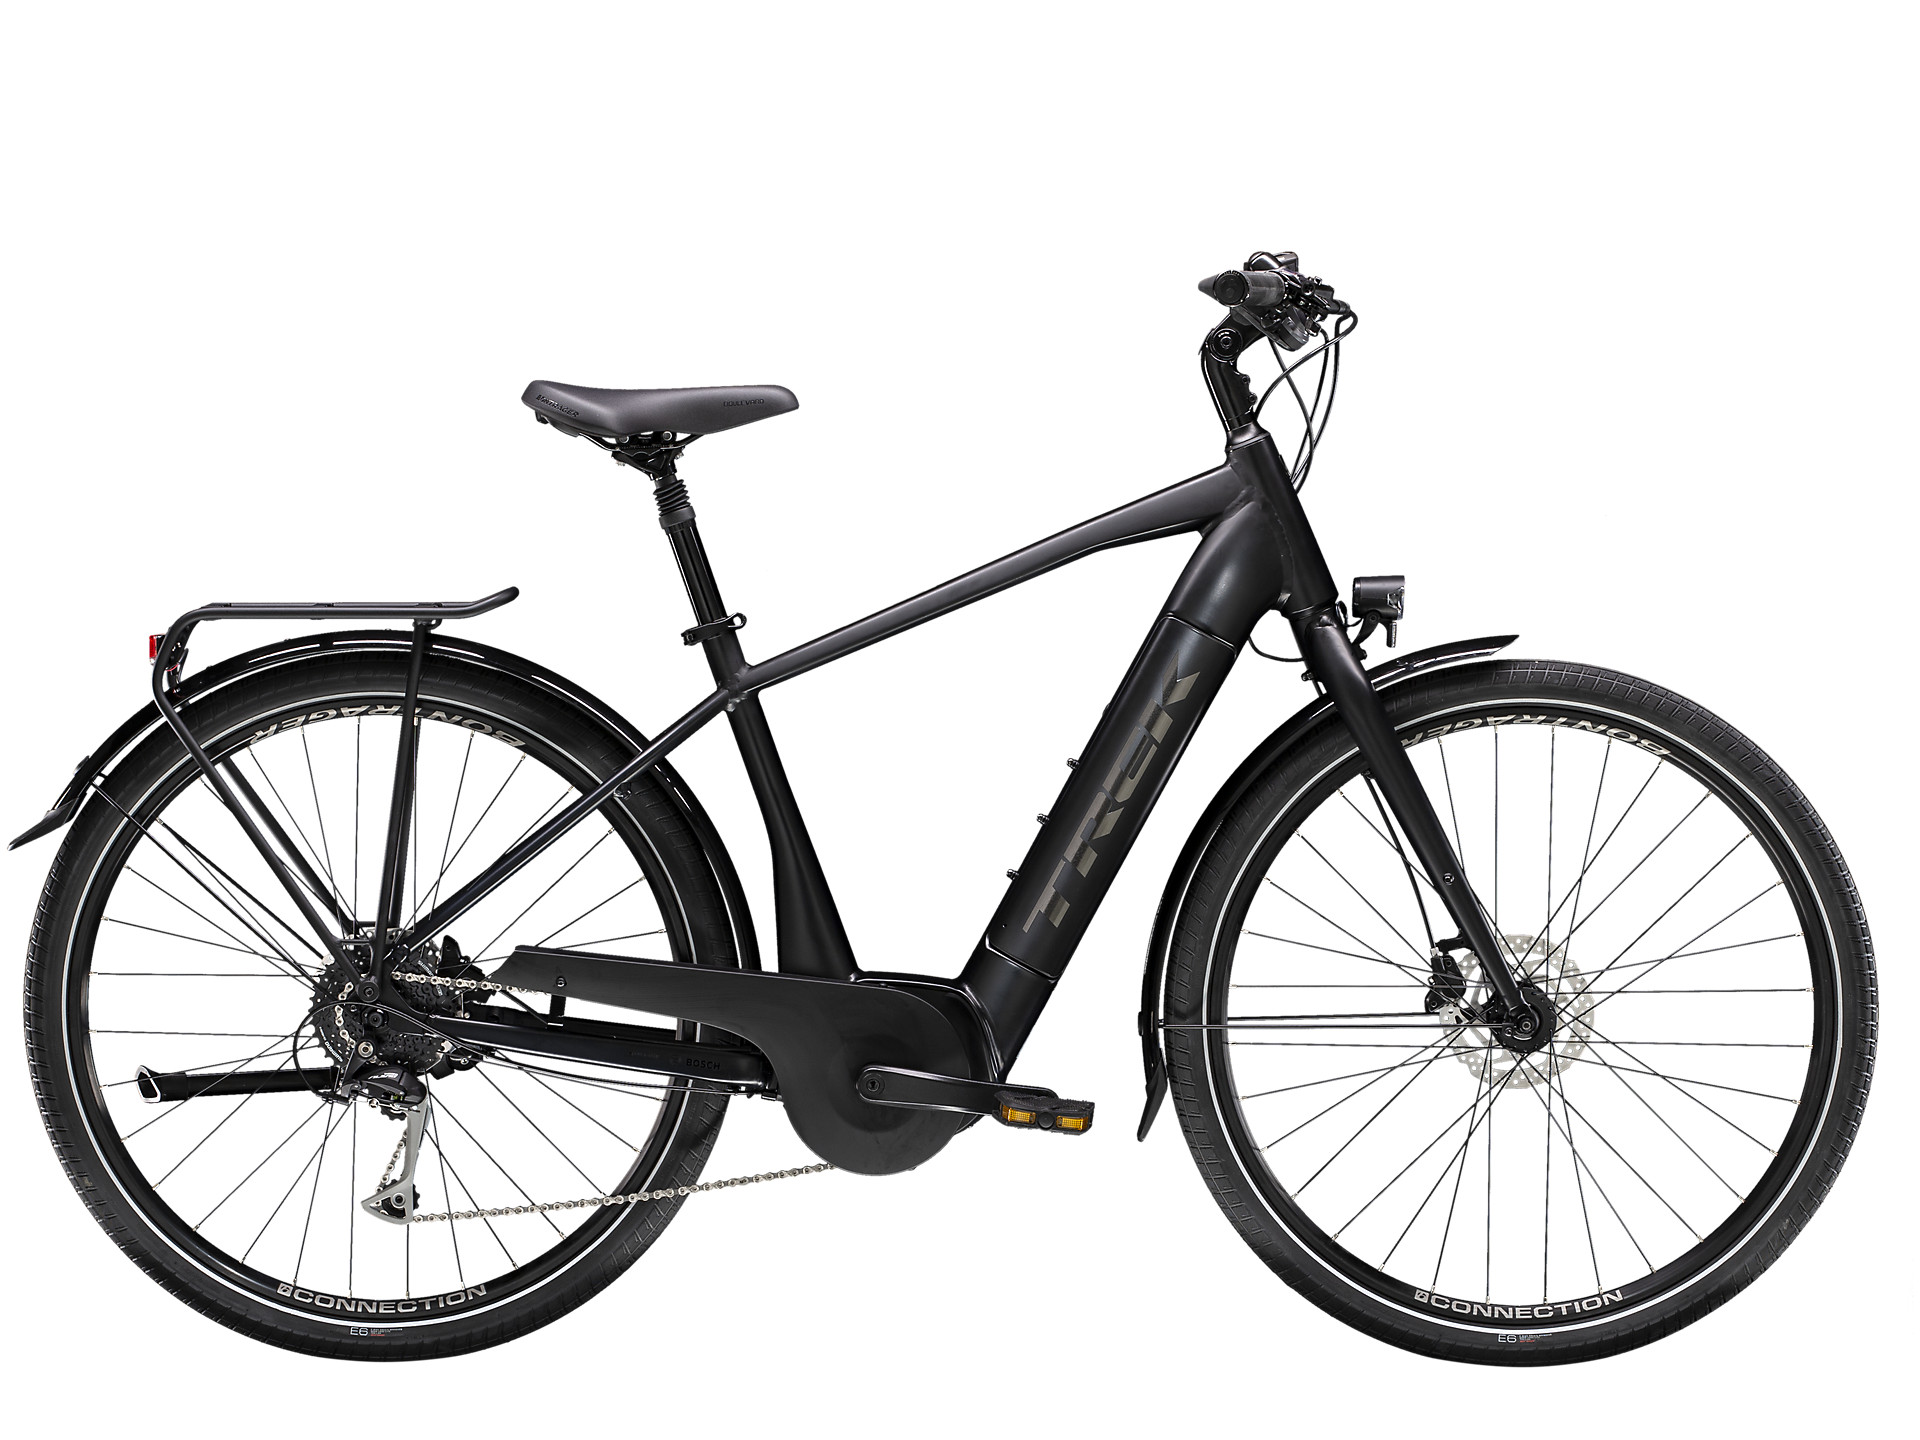 Trek Verve+ 3 electric bike